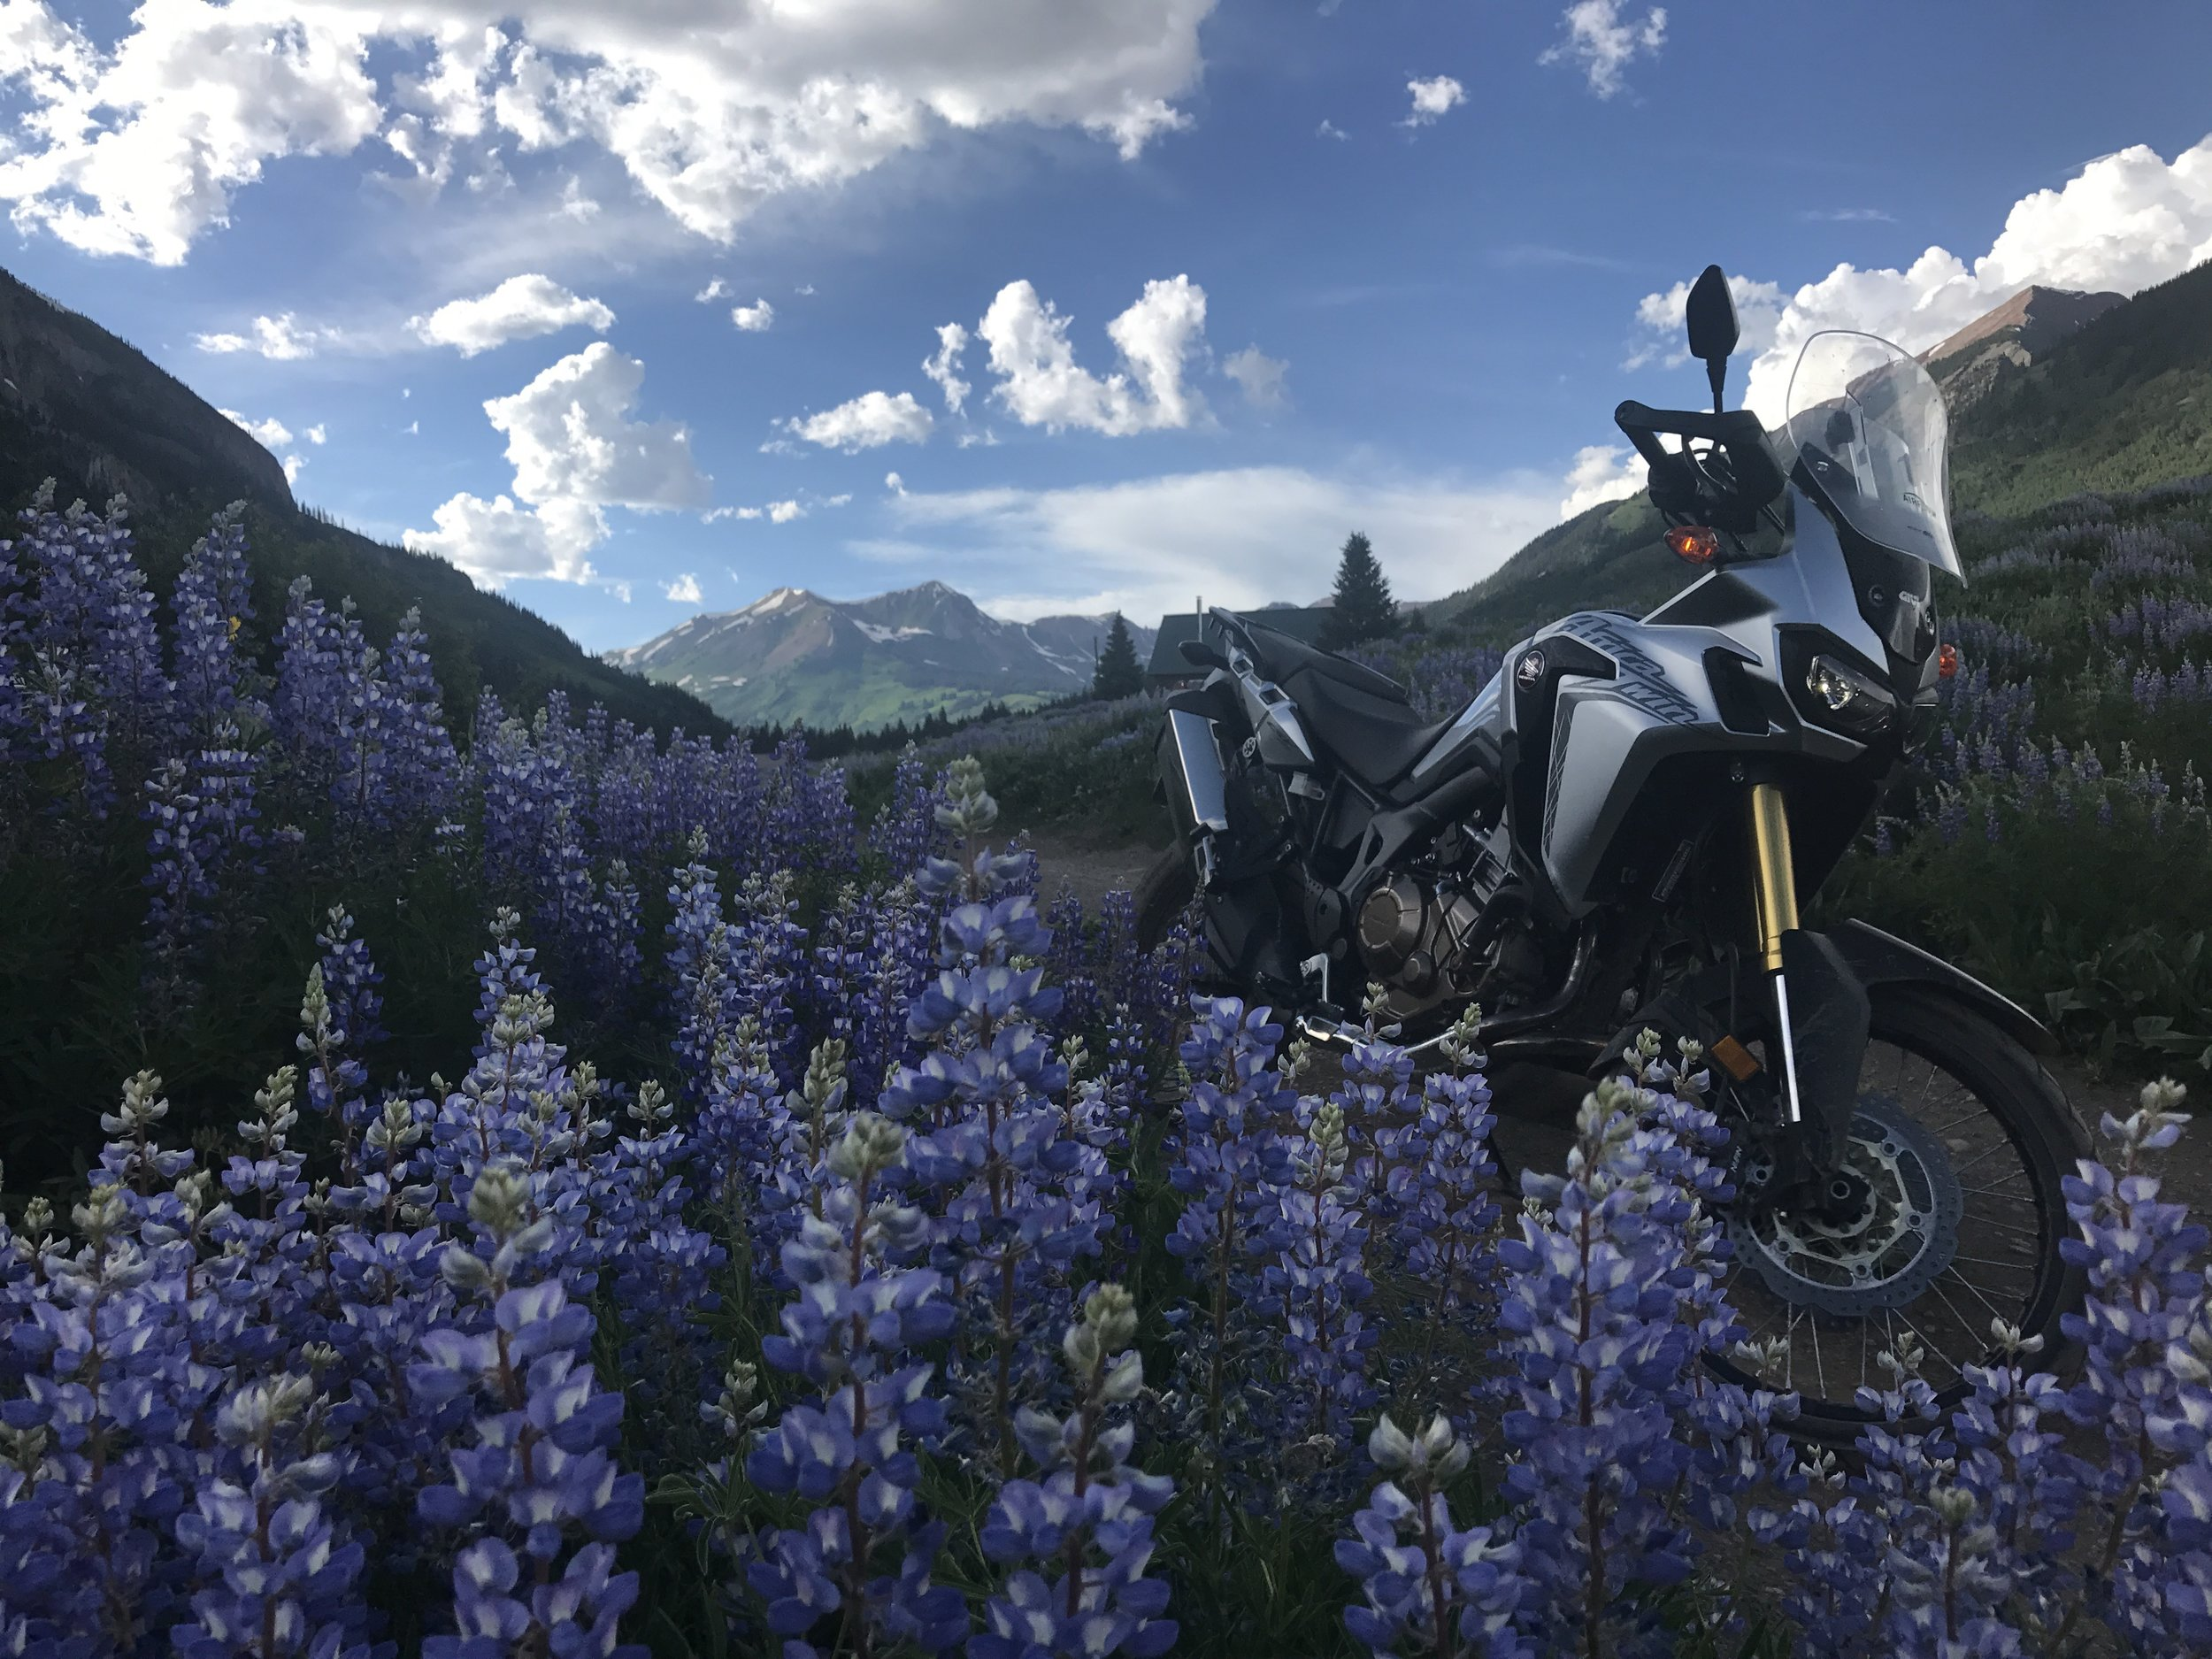 motorcycle rental crested butte.jpg